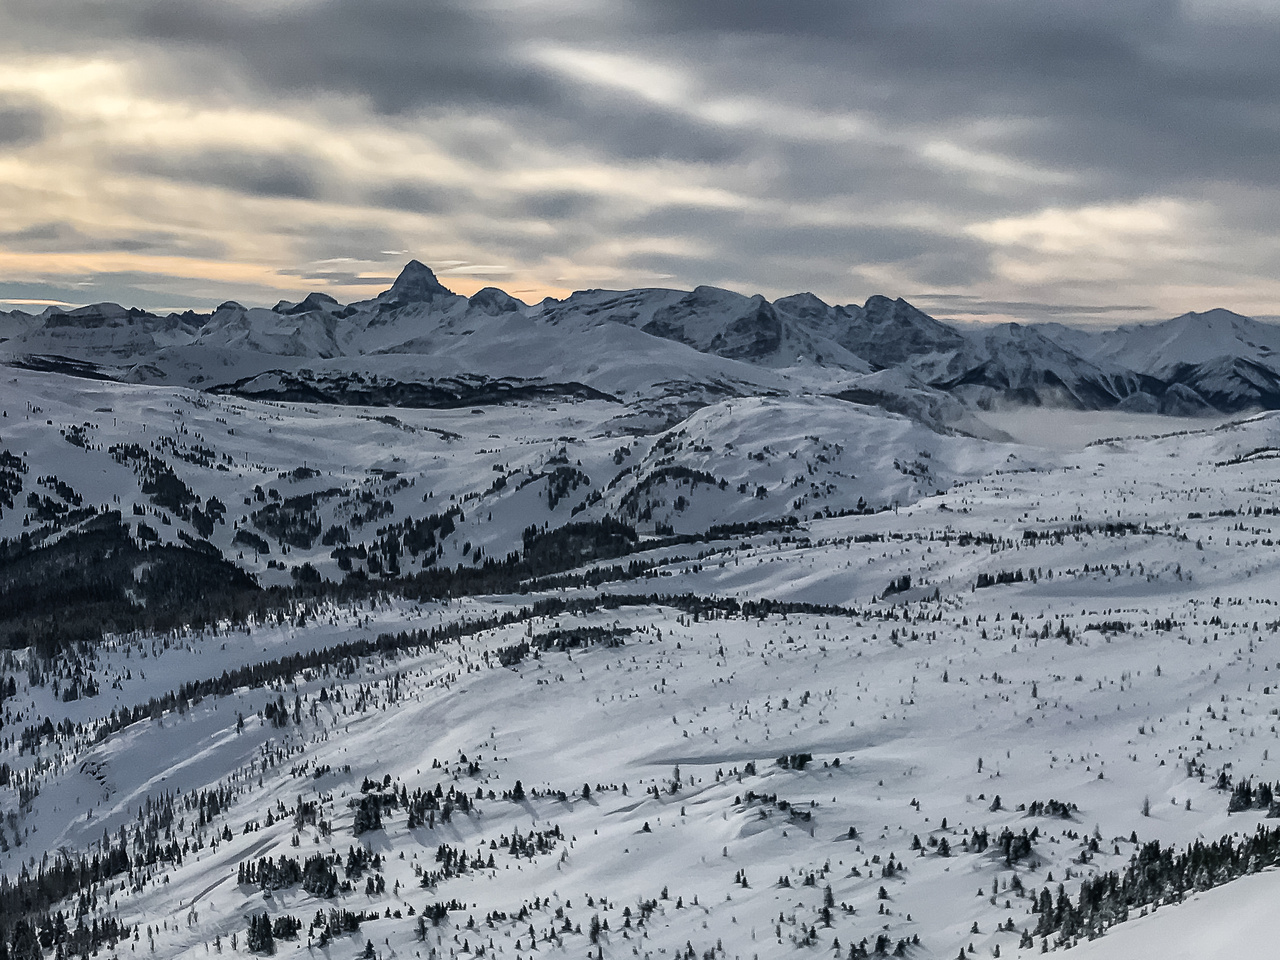 Looking over the lovely Sunshine Meadows to the south towards Mount Assiniboine with Quartz Hill in front and Simpson Ridge, Nestor and Indian Peaks